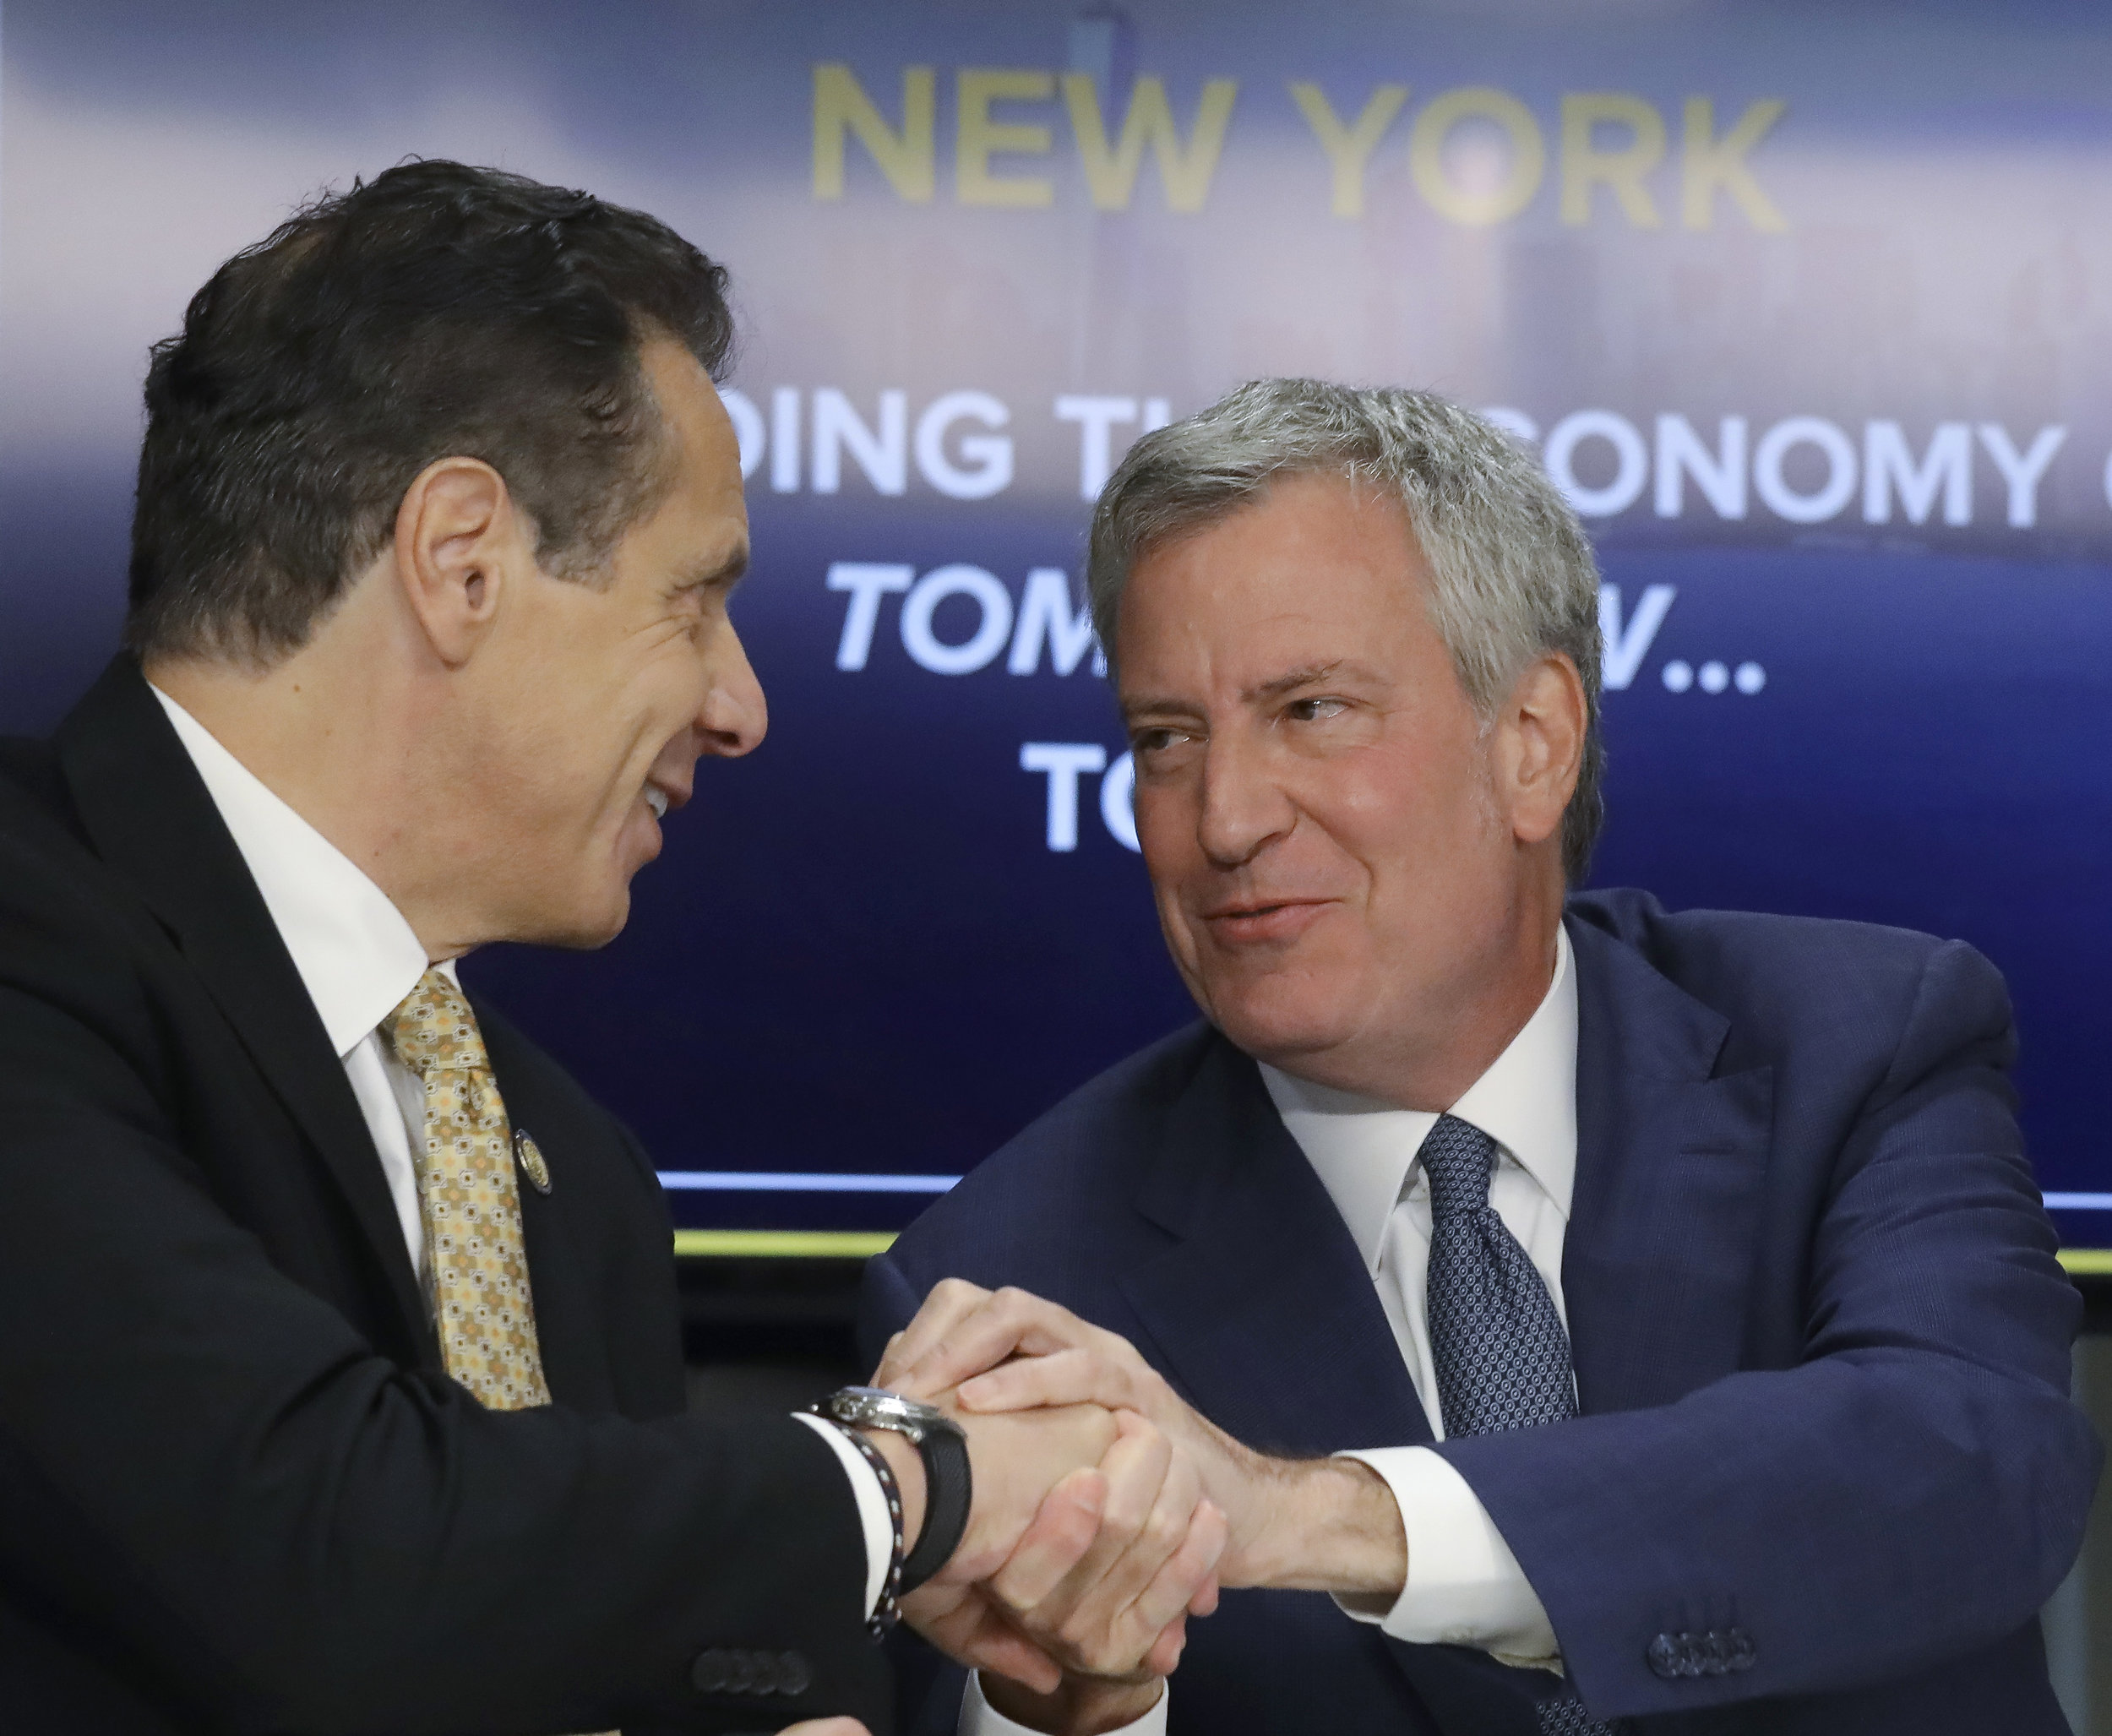 Gov. Andrew Cuomo and Mayor Bill de Blasio both embraced Amazon's arrival at a press conference this week. AP Photo.